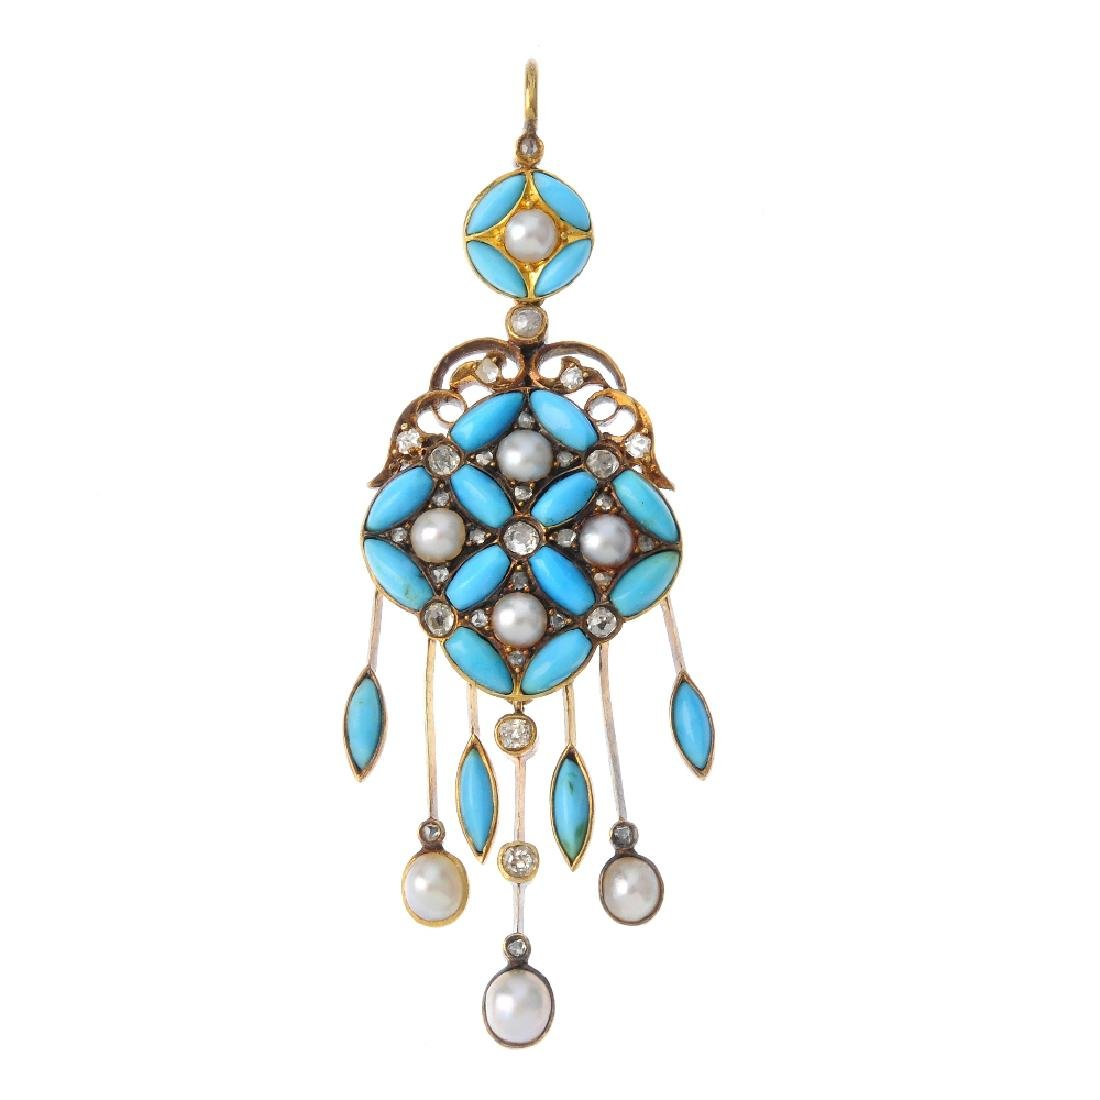 A mid Victorian gold, diamond and gem-set pendant,